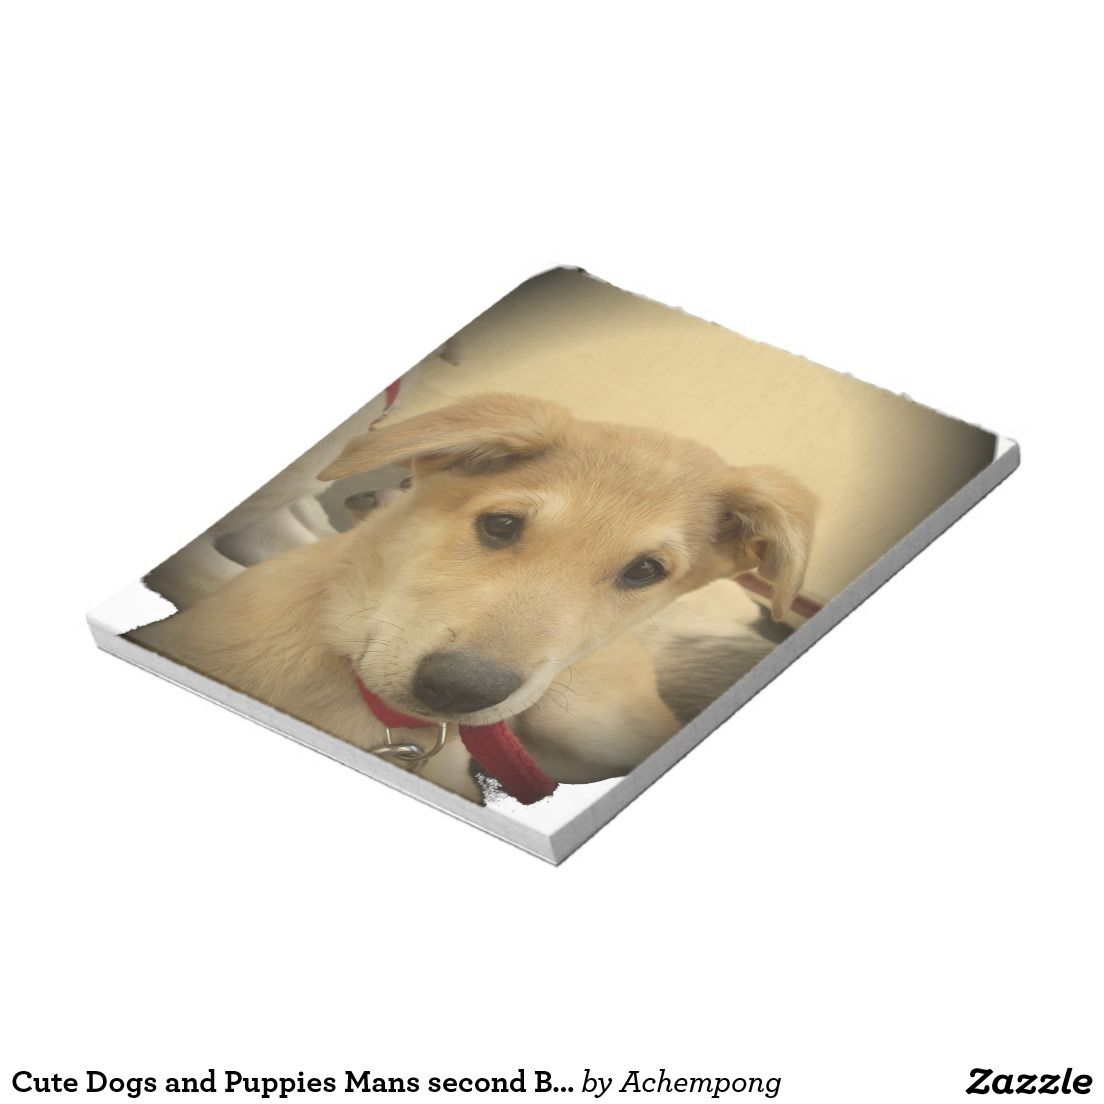 Cute dogs and puppies mans second best friendg notepad